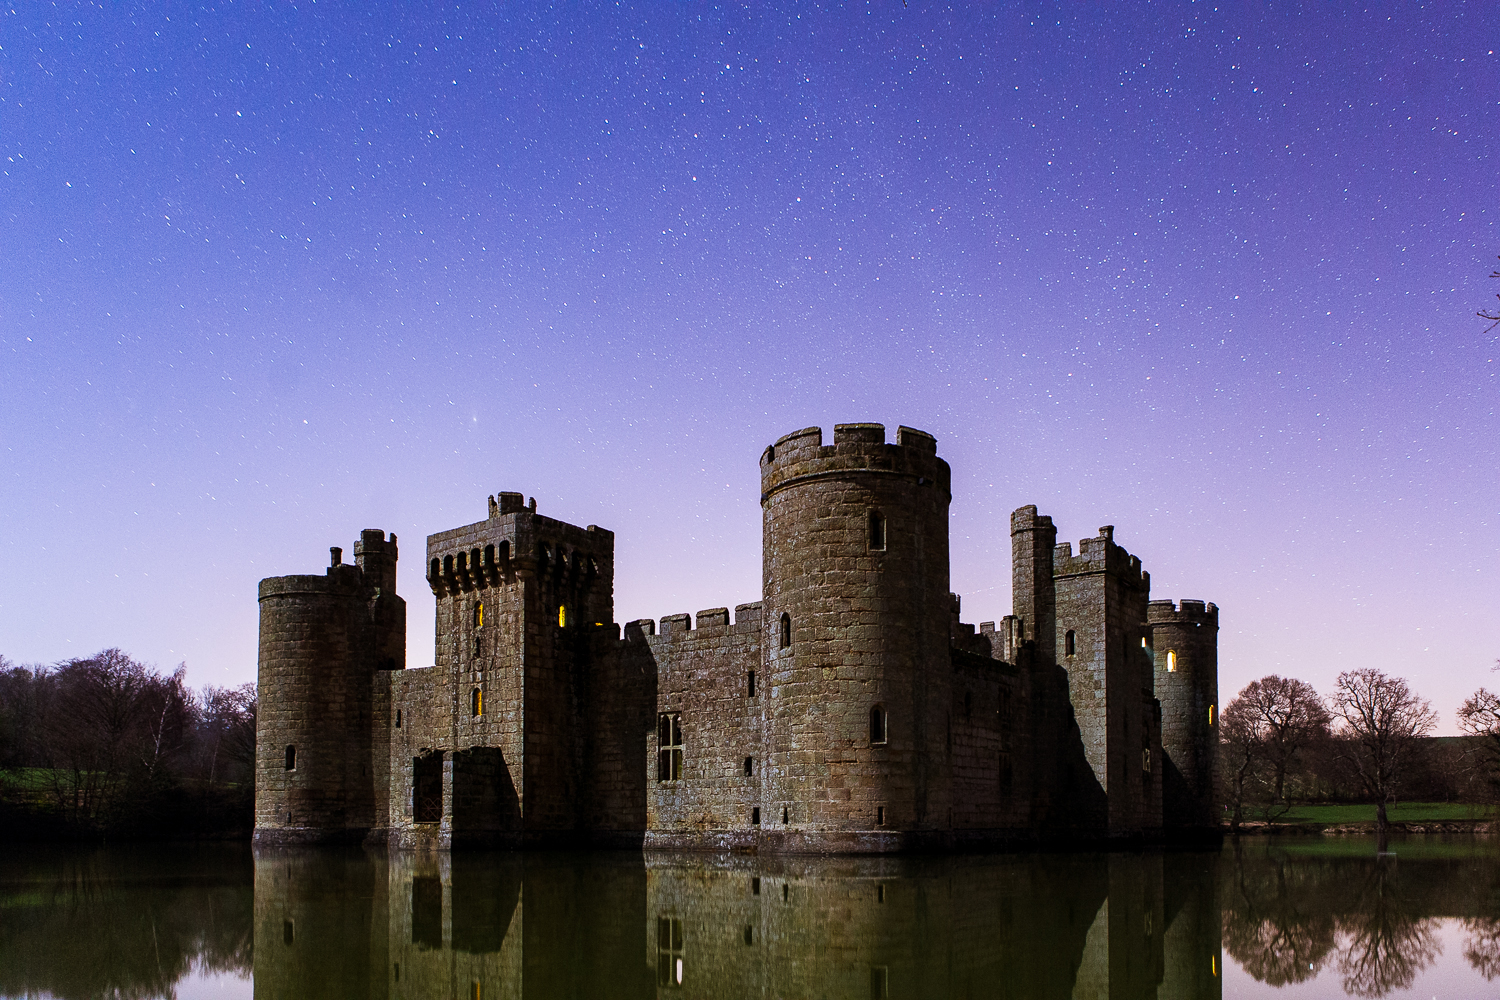 Bodiam Castle (1x 30 second exposure ISO 4000 - testing the frame)